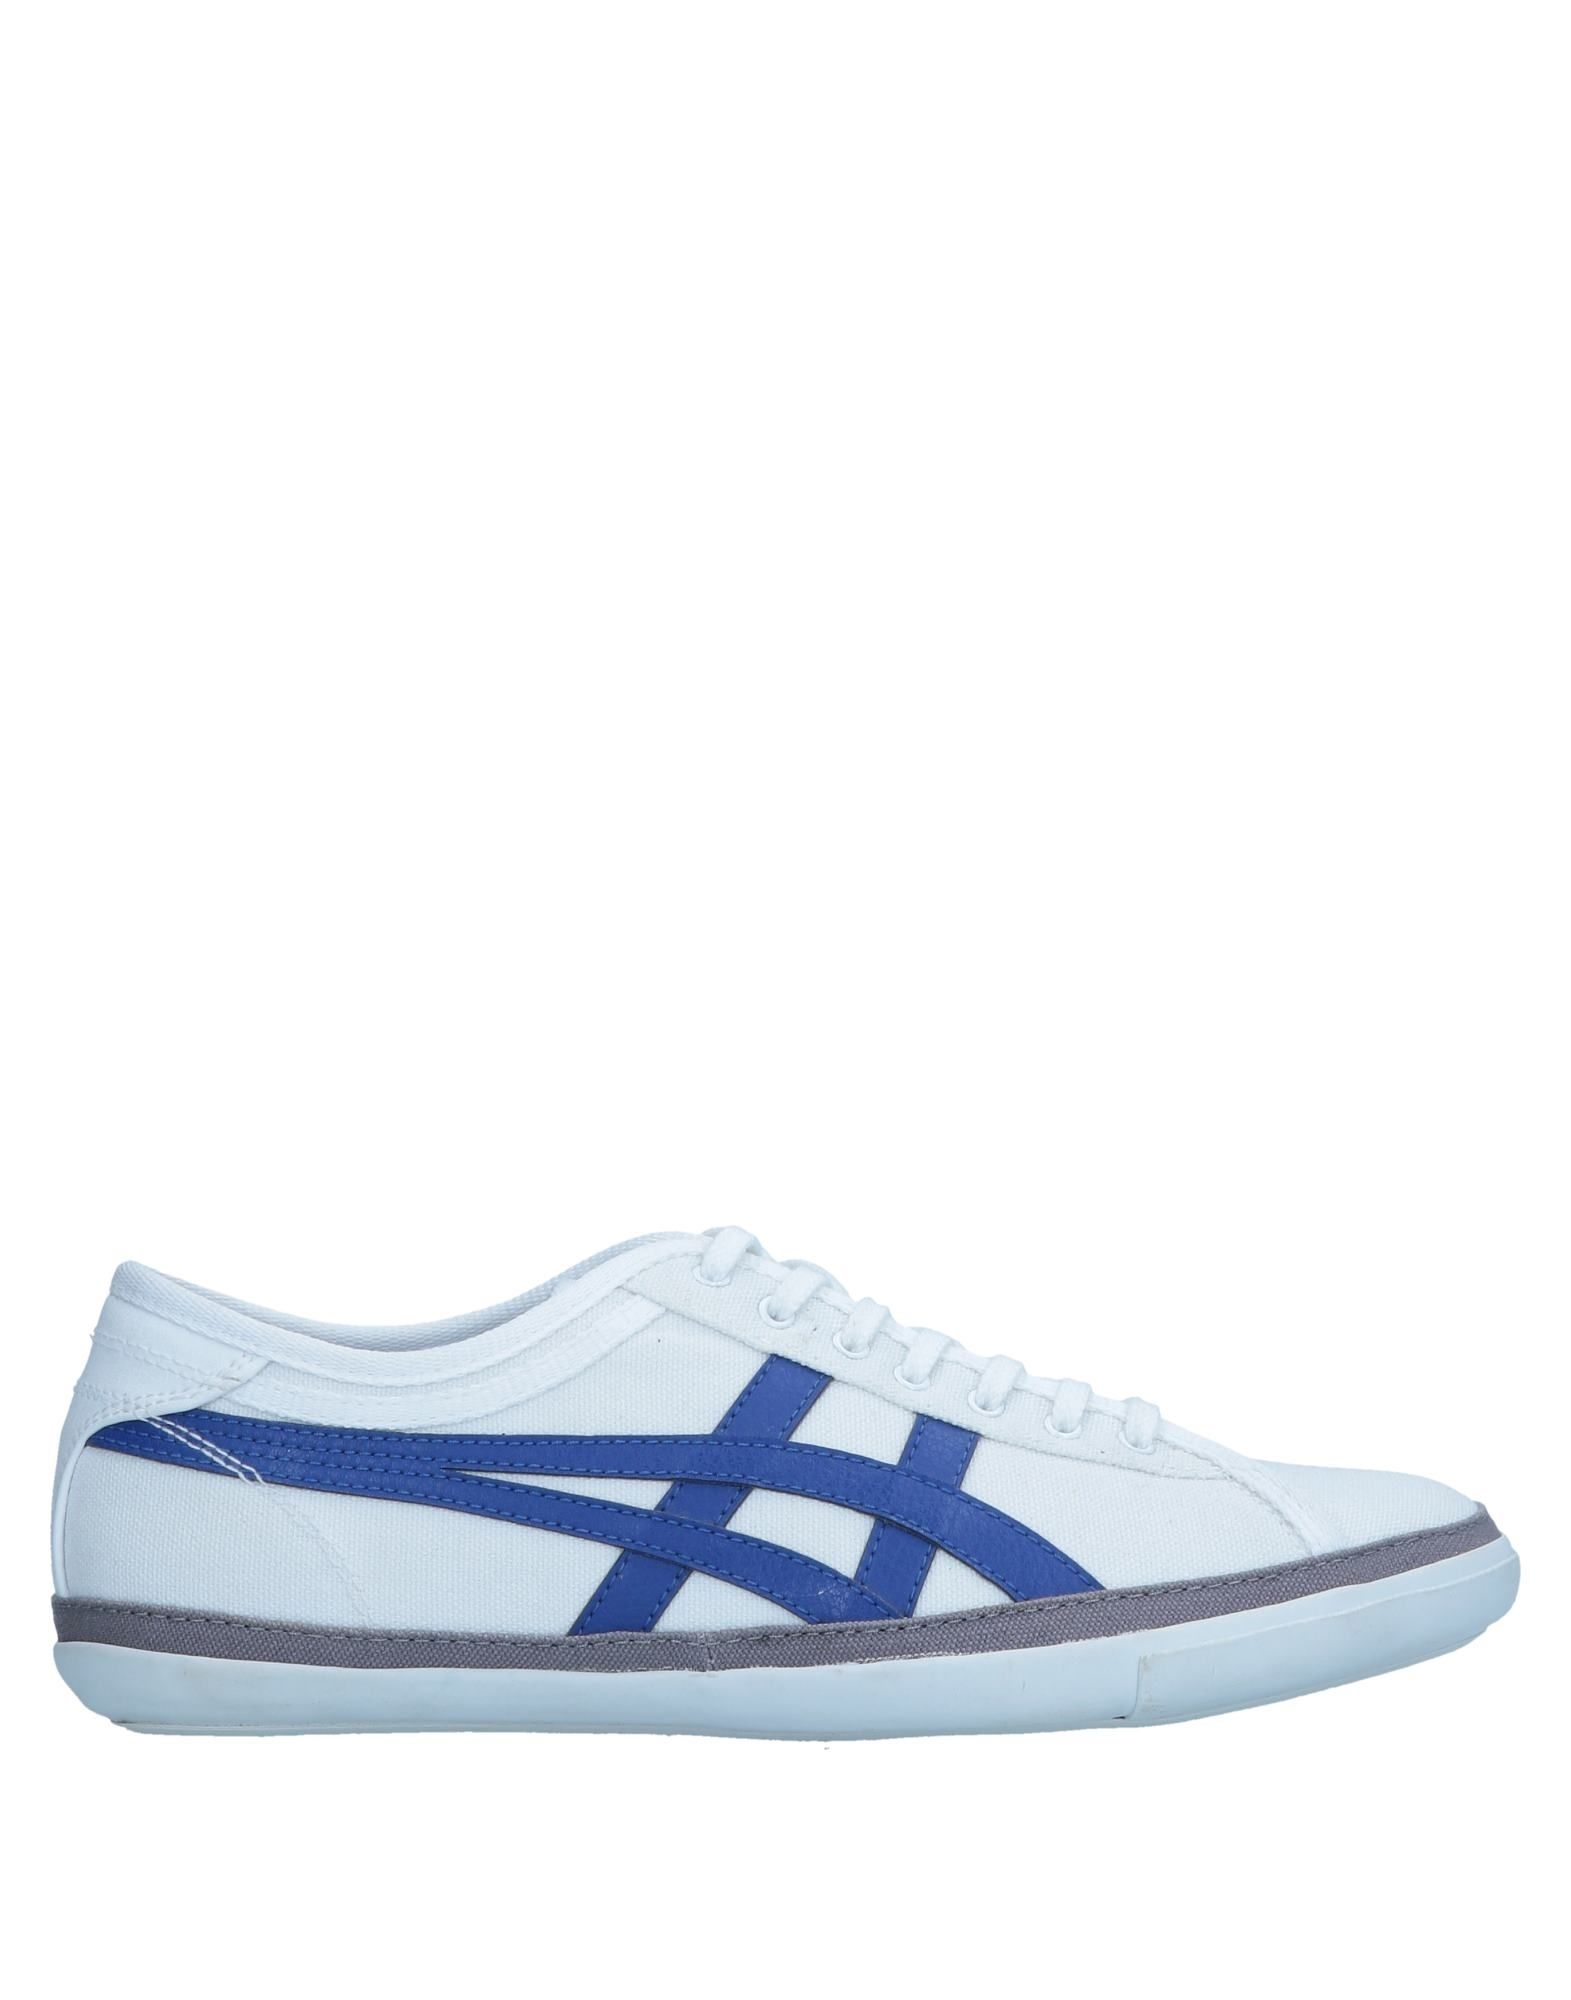 Baskets Asics Homme - Baskets Asics  Blanc Chaussures casual sauvages